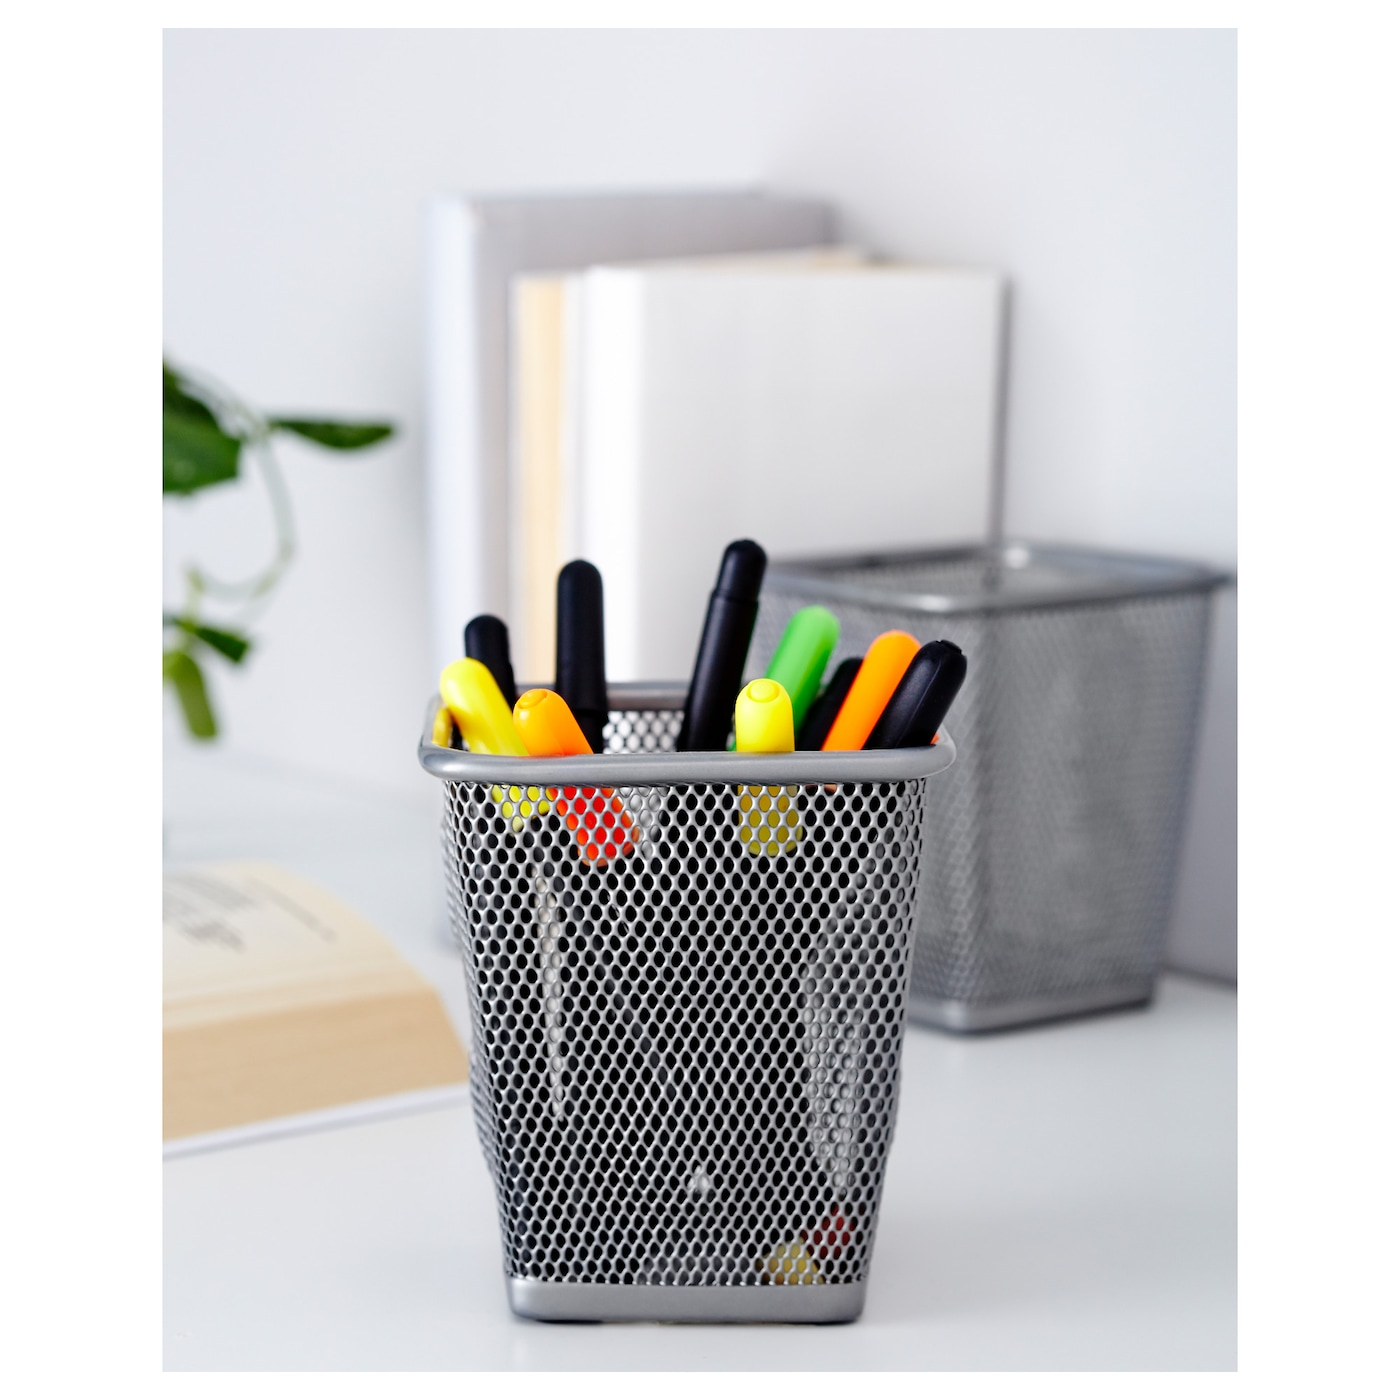 IKEA DOKUMENT pen cup